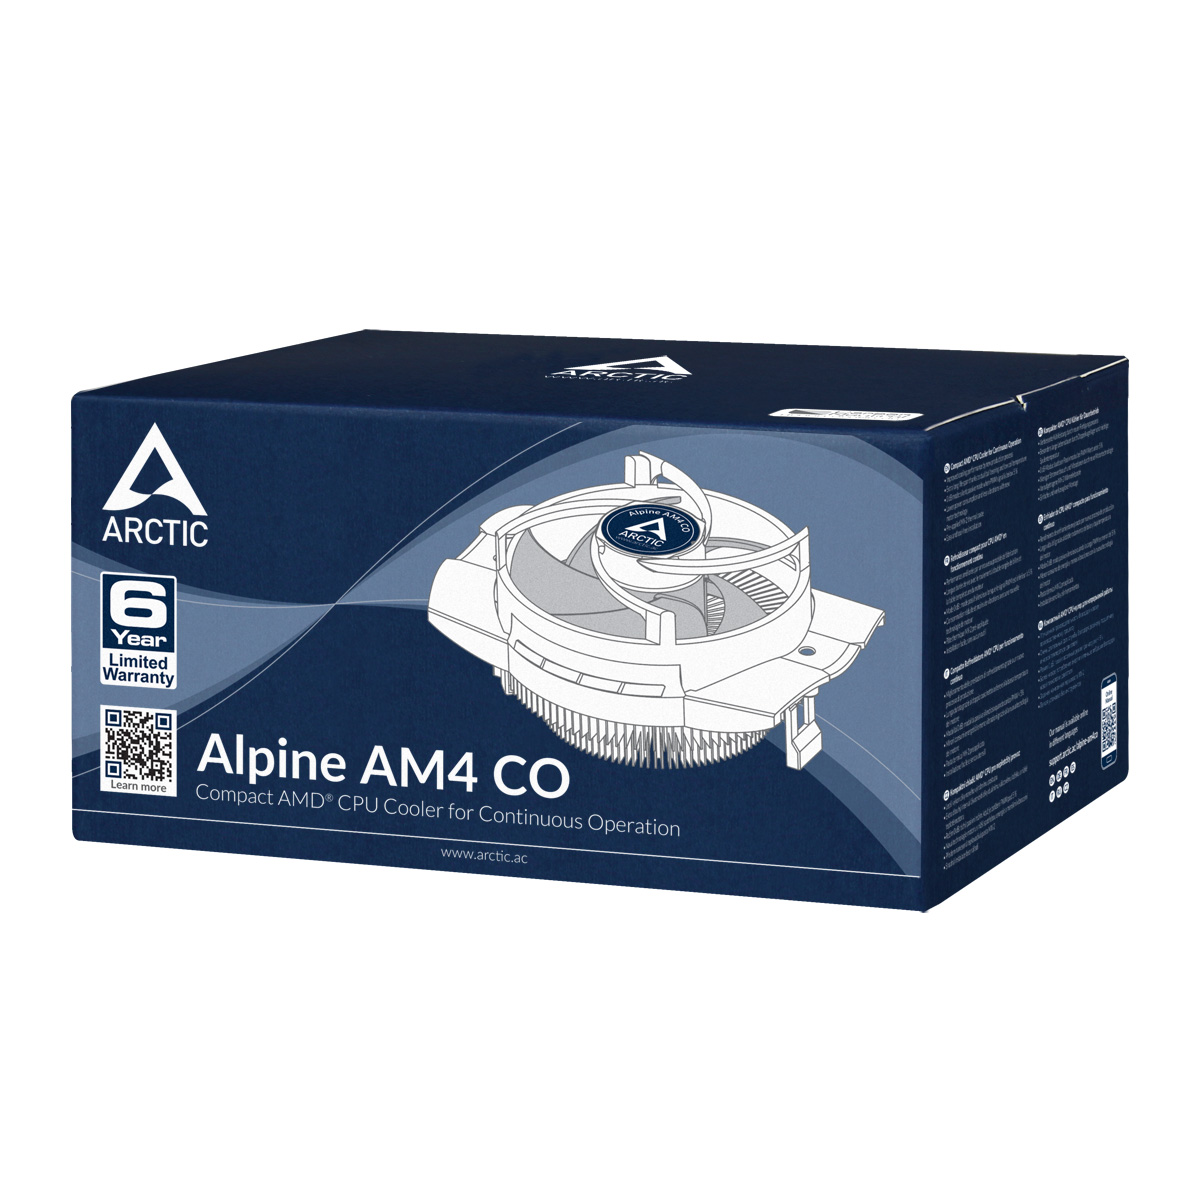 Compact AMD CPU Cooler for Continuous Operation ARCTIC Alpine AM4 CO Packaging Front View